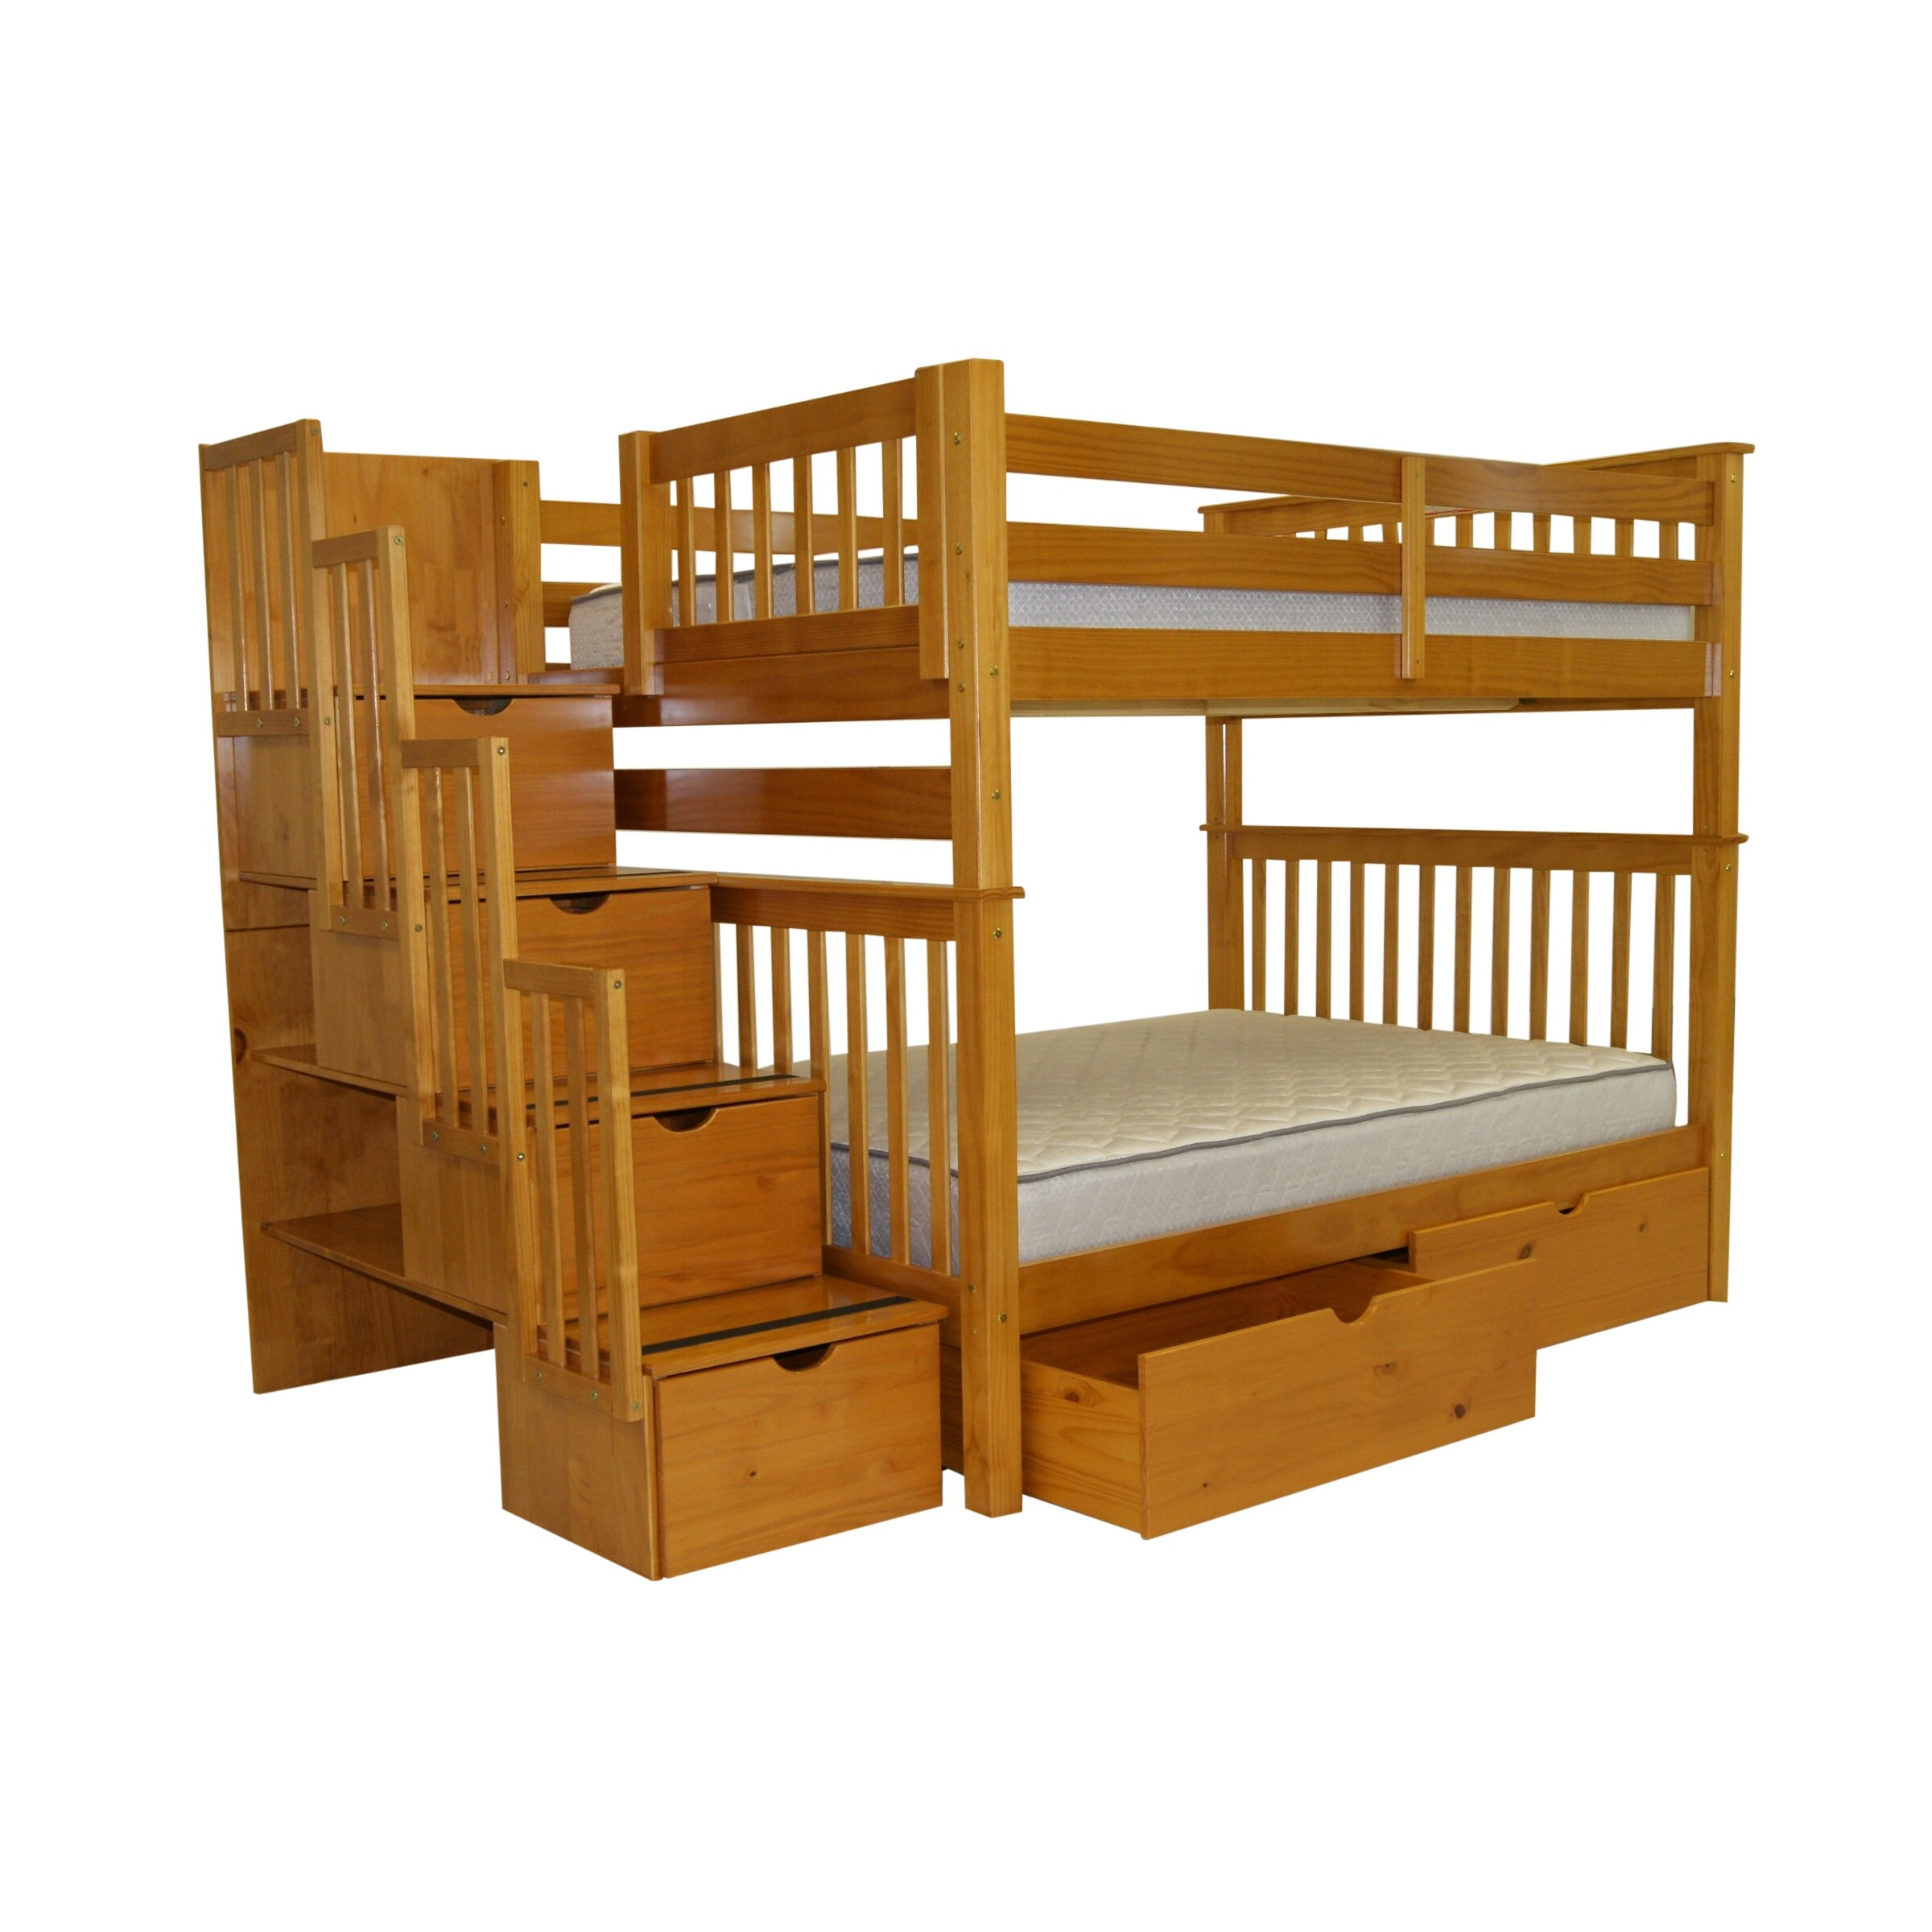 Bedz King Full Over Full Bunk Bed With Storage Reviews